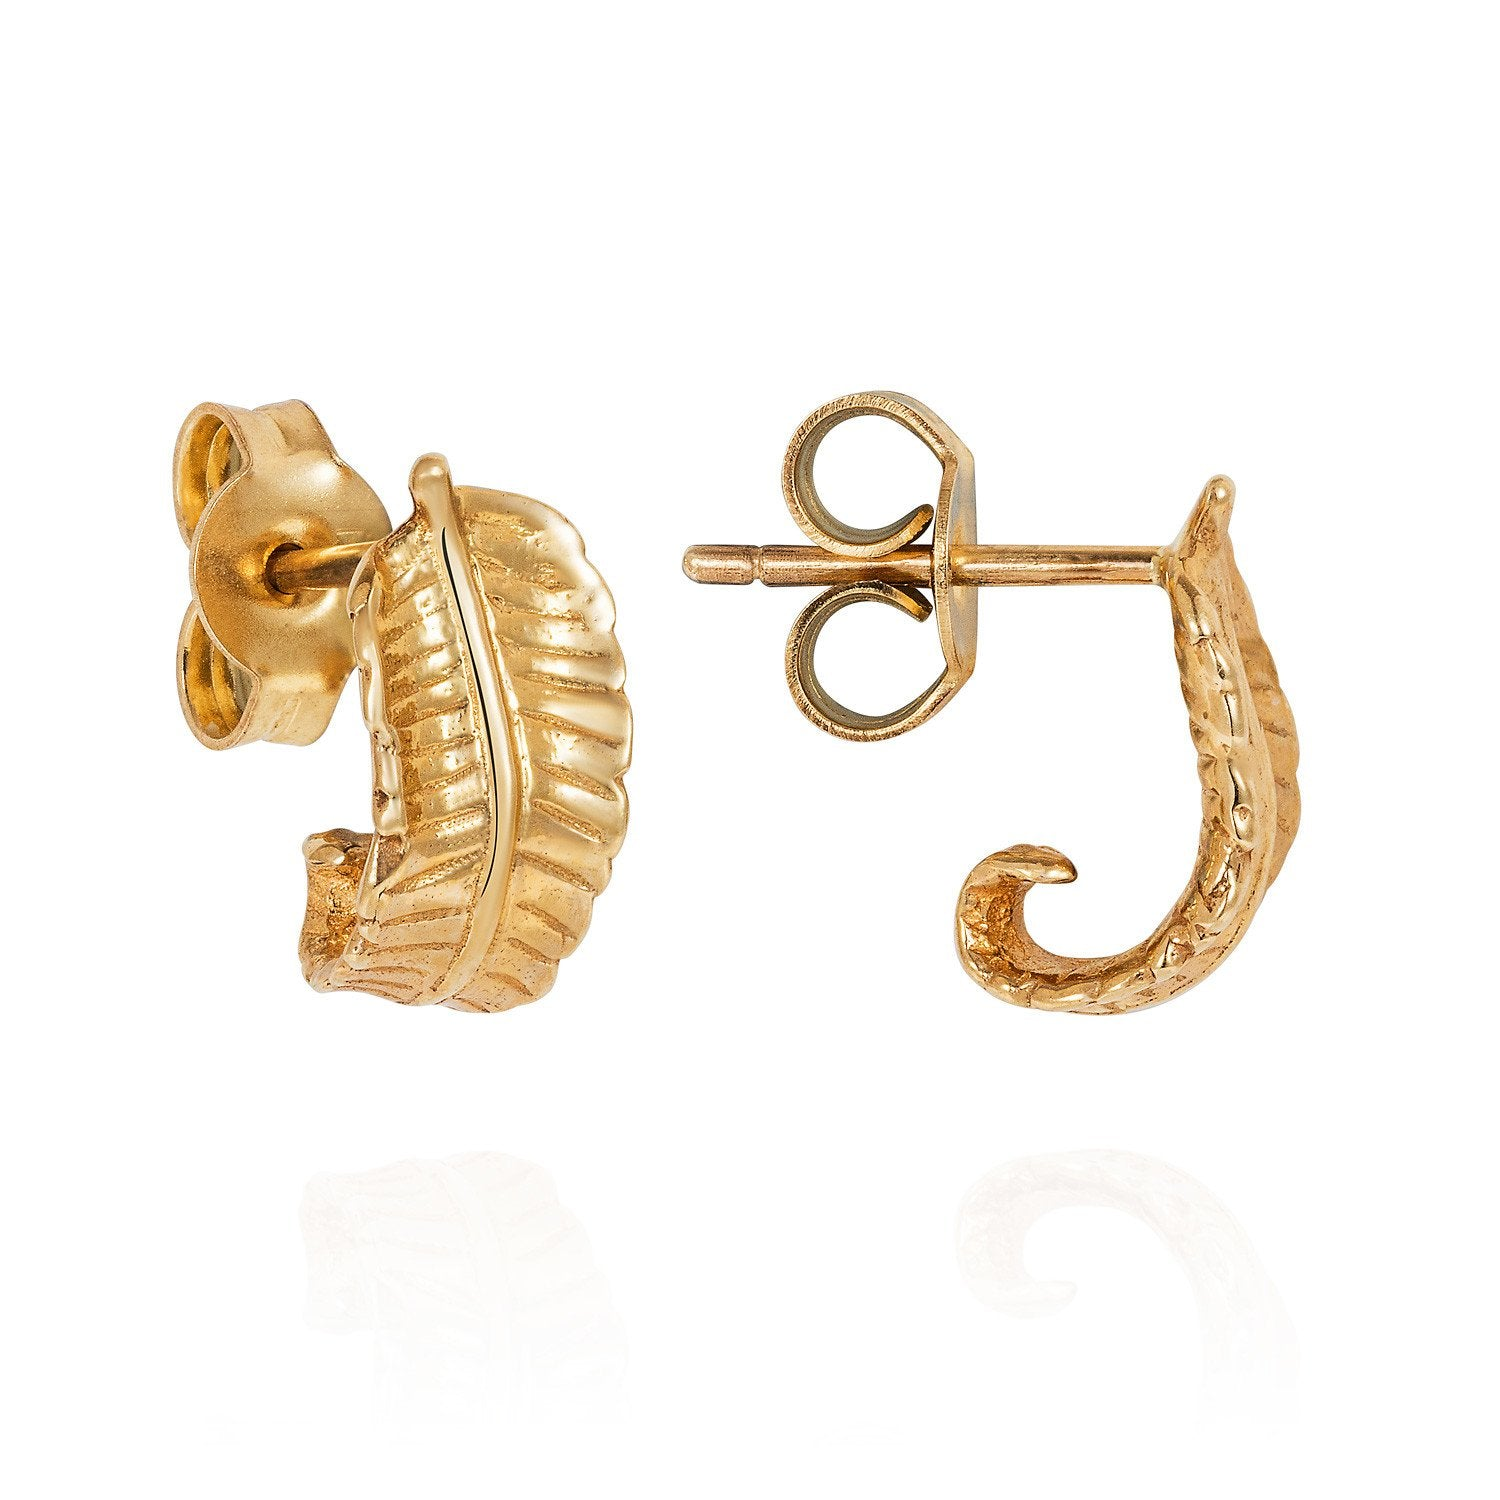 Gold Curled Fern Earrings